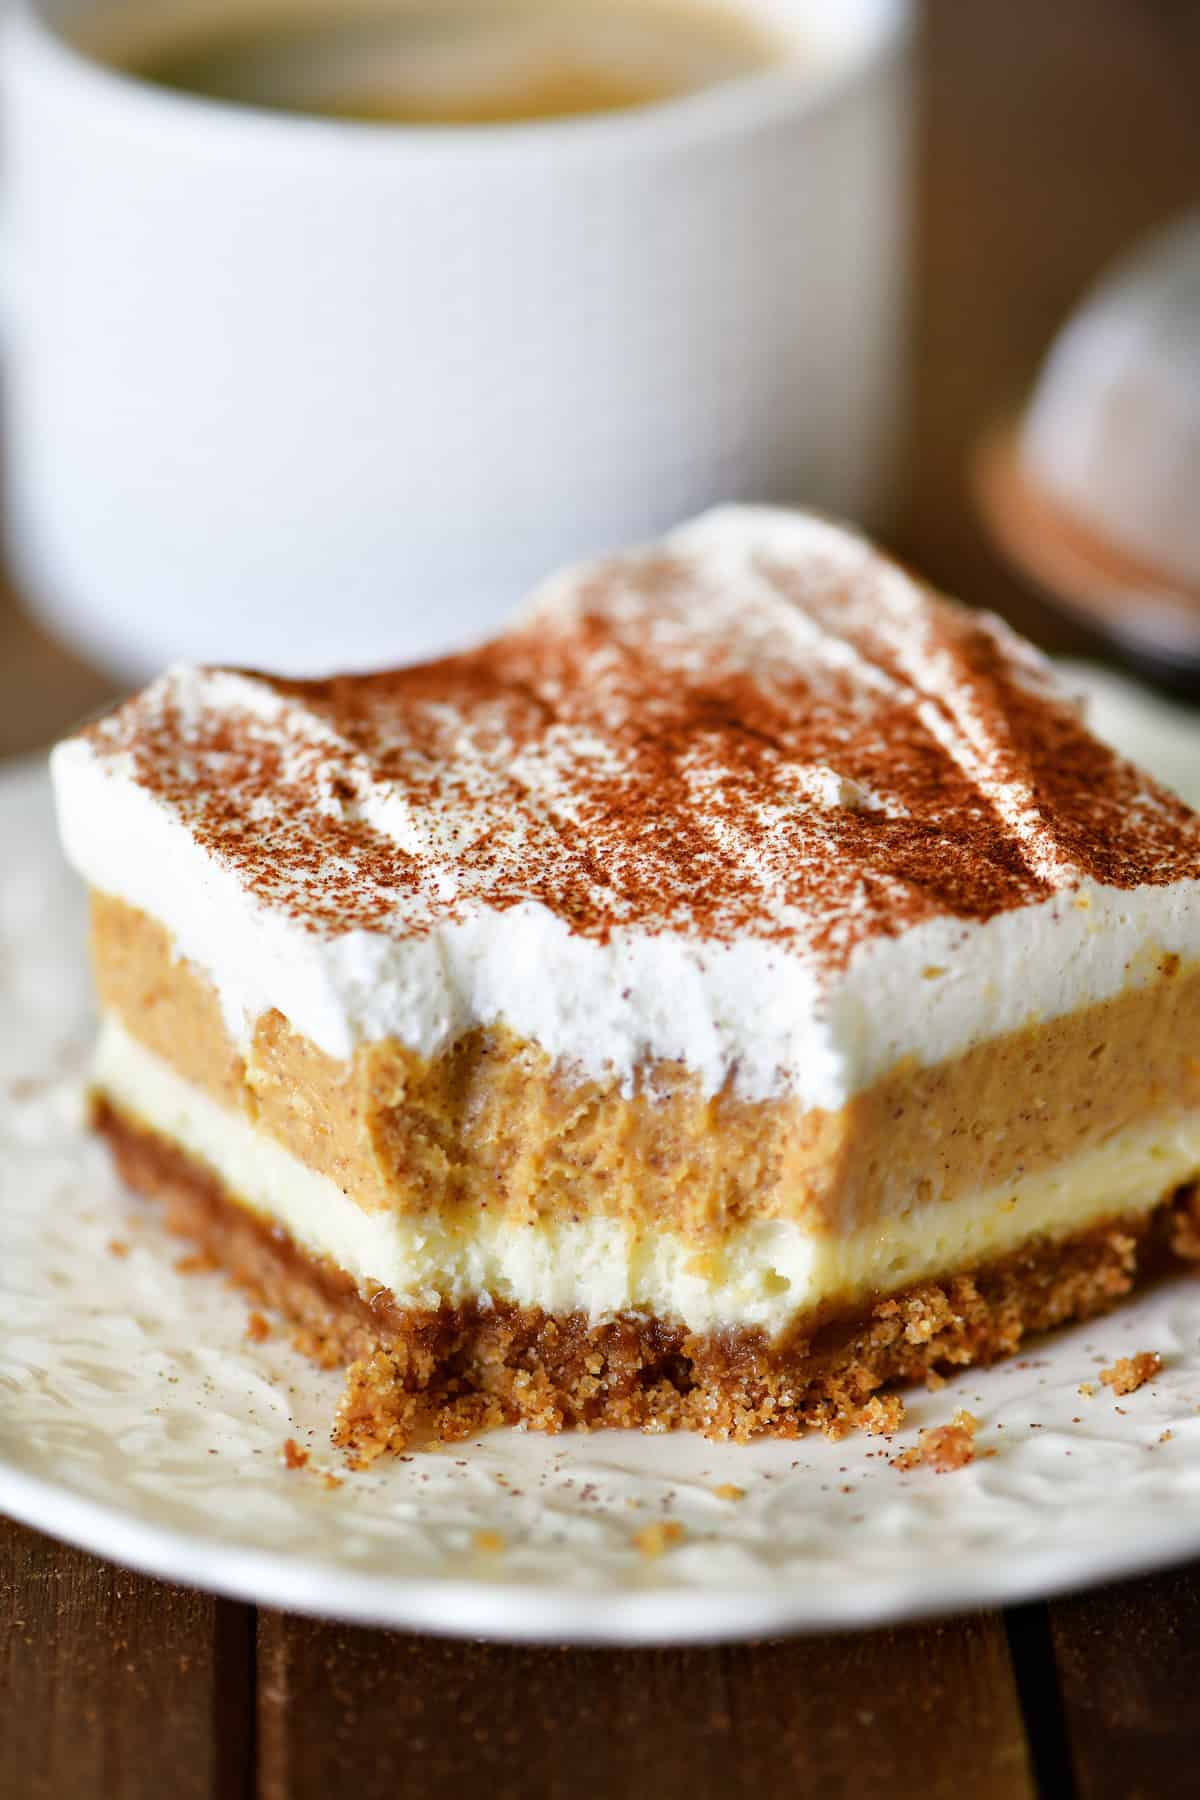 A slice of Pumpkin Cheesecake Dessert on a white plate.